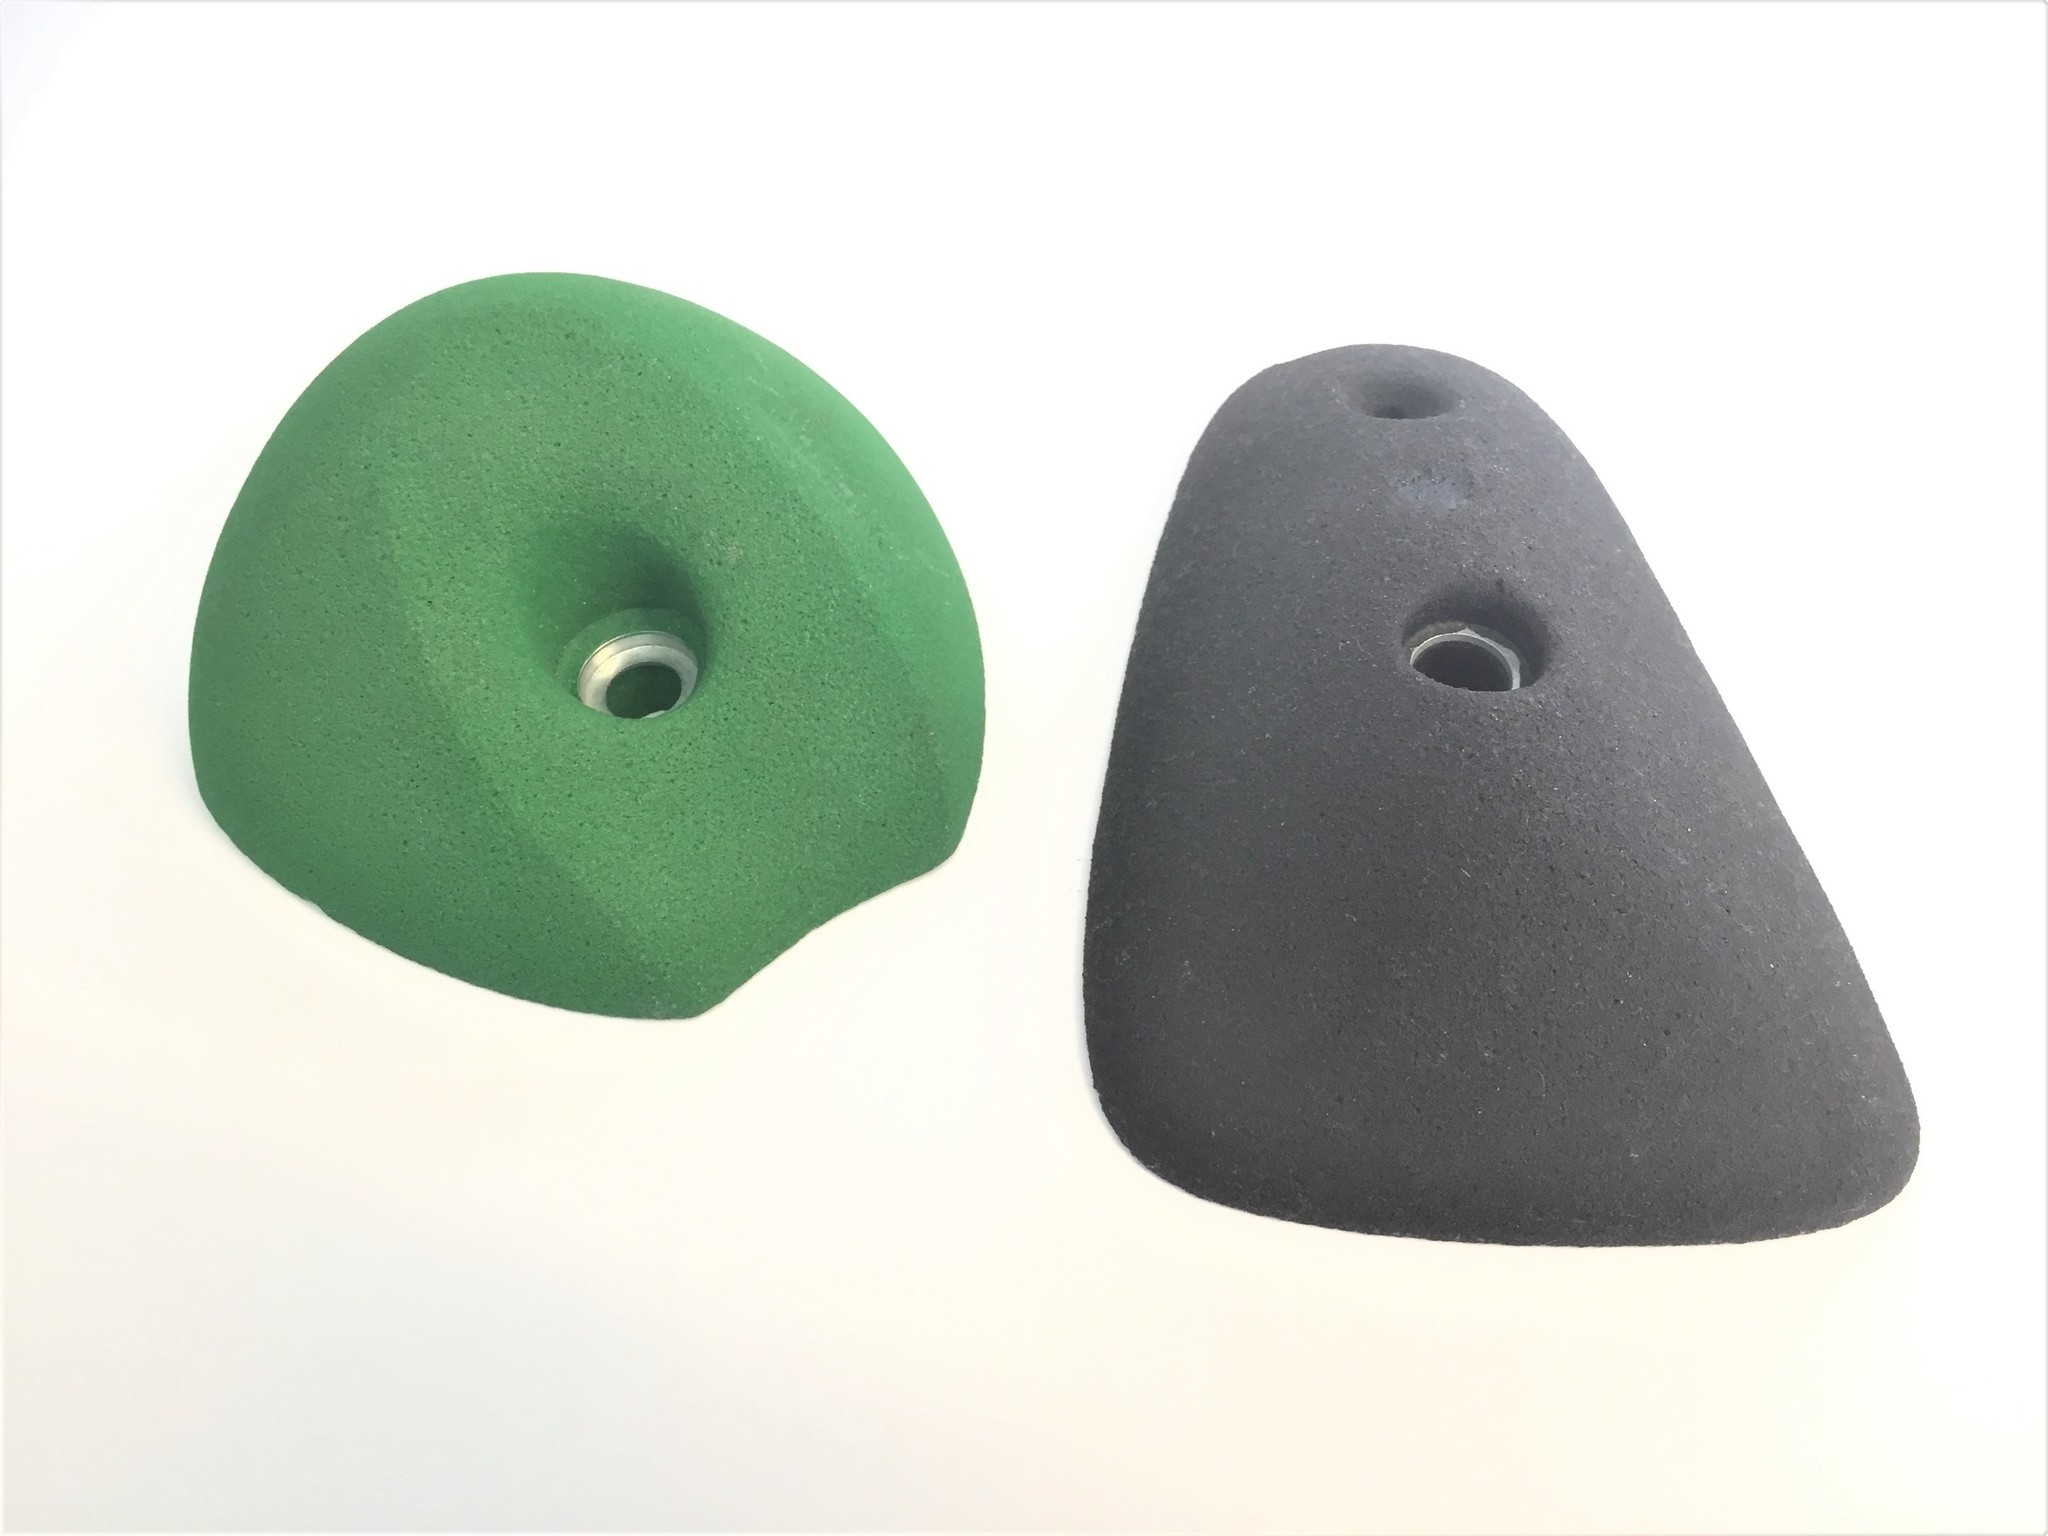 Molded climbing handles made of epoxy